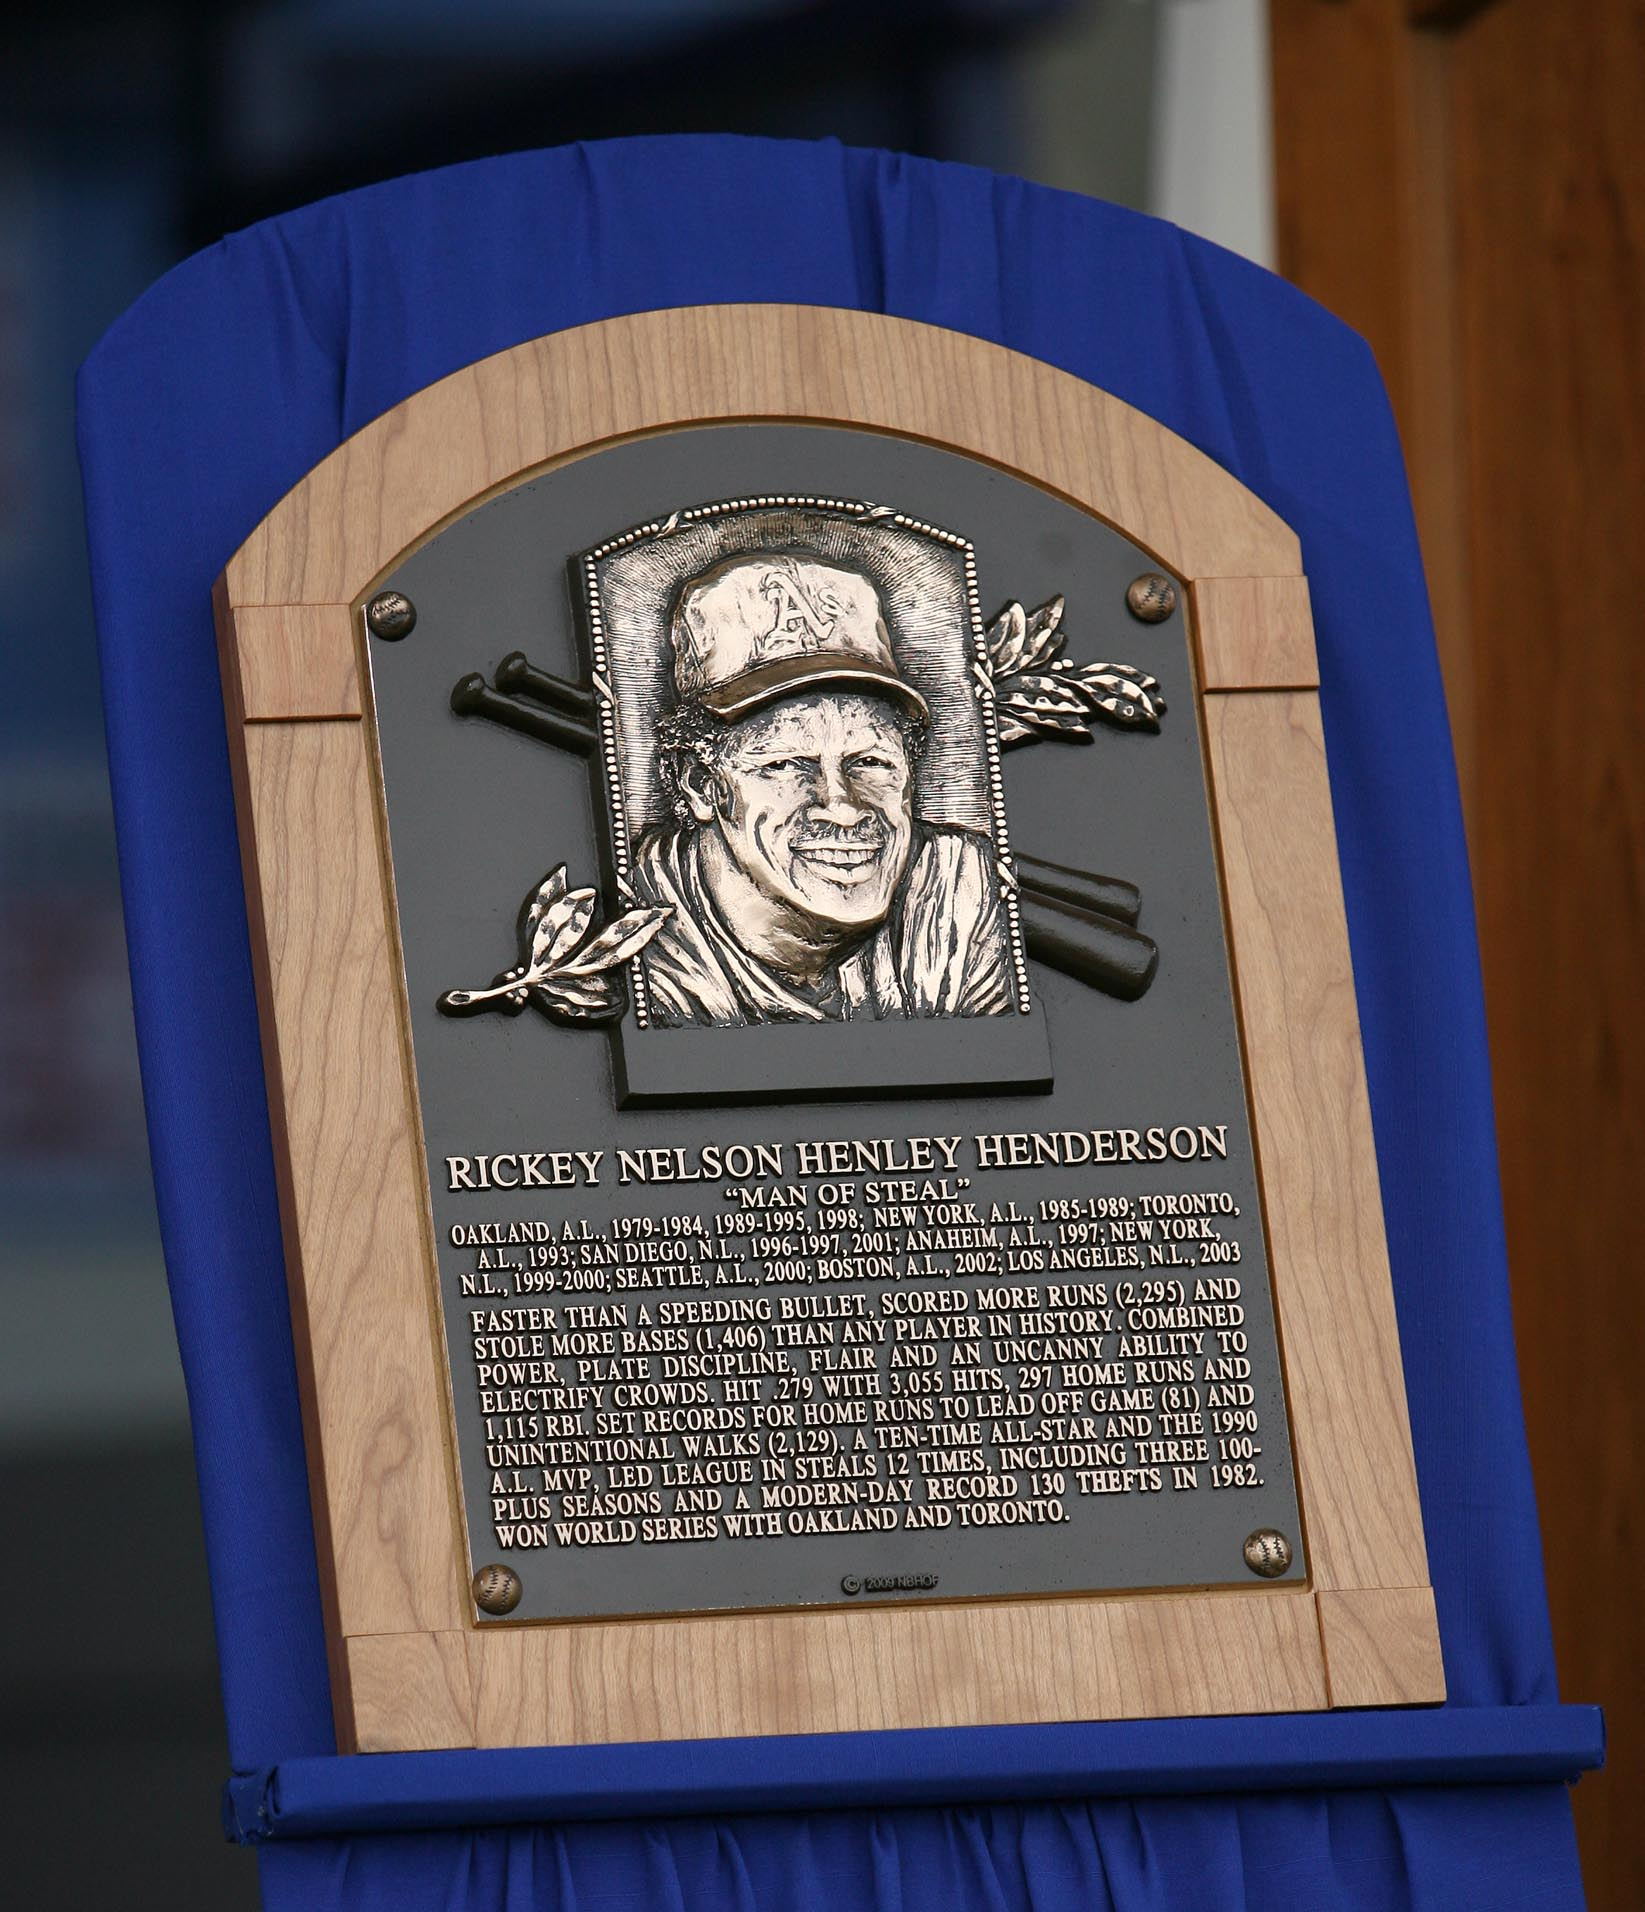 Oakland A's Rickey Henderson plaque is shown during the National Baseball Hall of Fame induction ceremony at the Clark Sports Center on Sunday, July 26, 2009, in Cooperstown, N.Y. Both Henderson and Boston Red Sox Jim Rice were inducted. (Jane Tyska/Staf